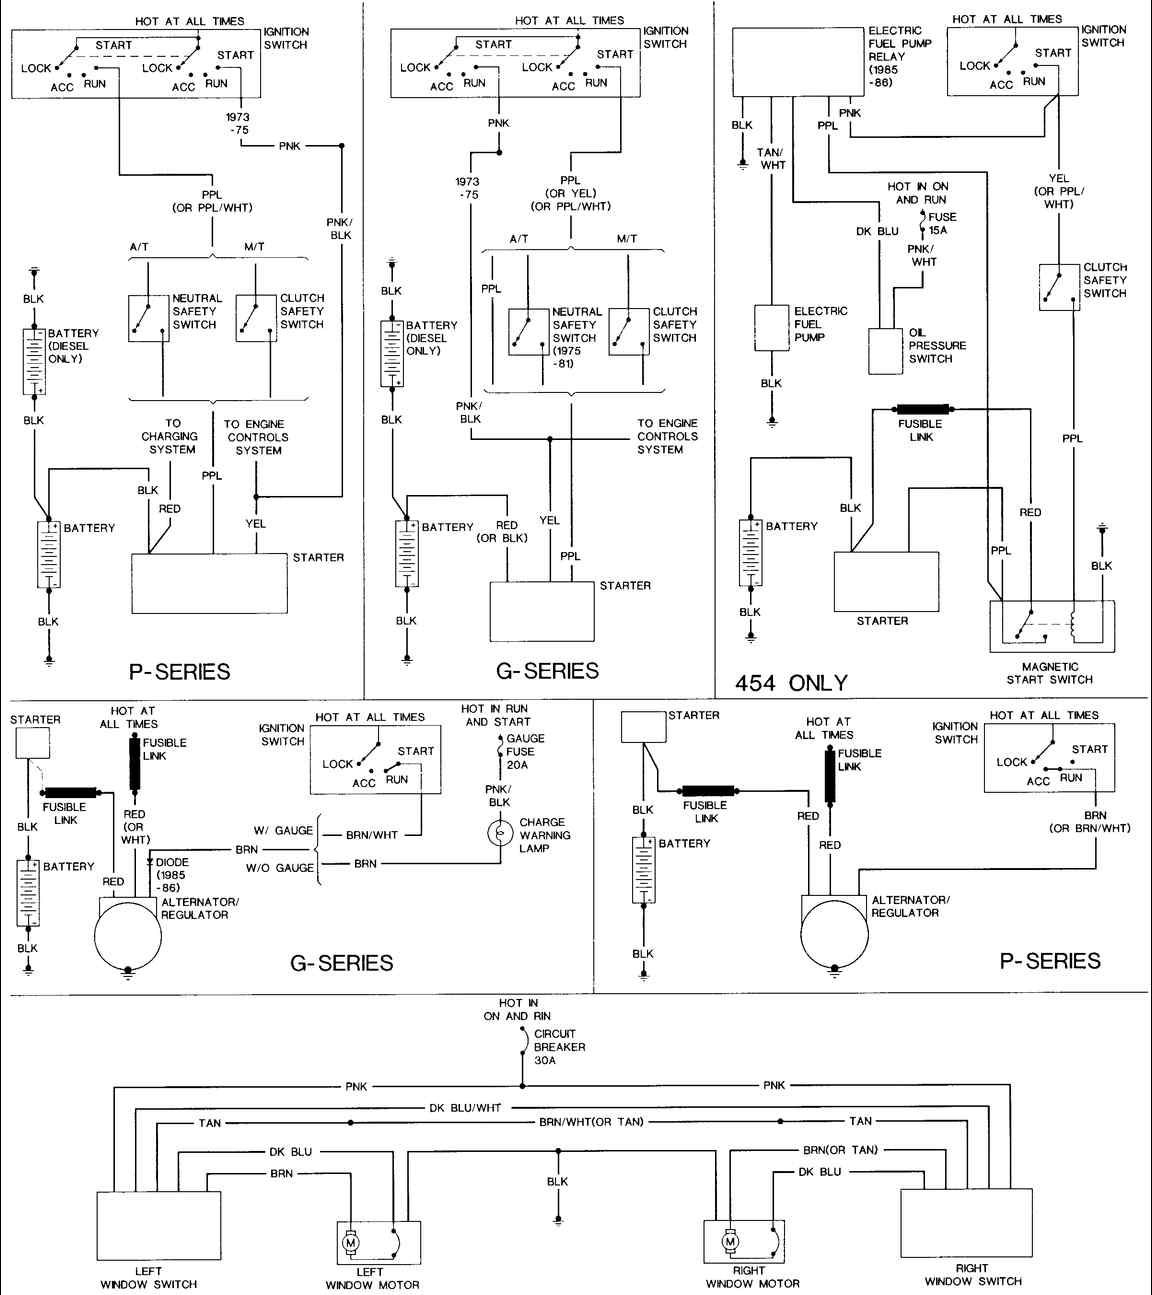 0c73623a181dc376dbb4777e2029d285 85 chevy truck wiring diagram 85 chevy van the steering column  at edmiracle.co